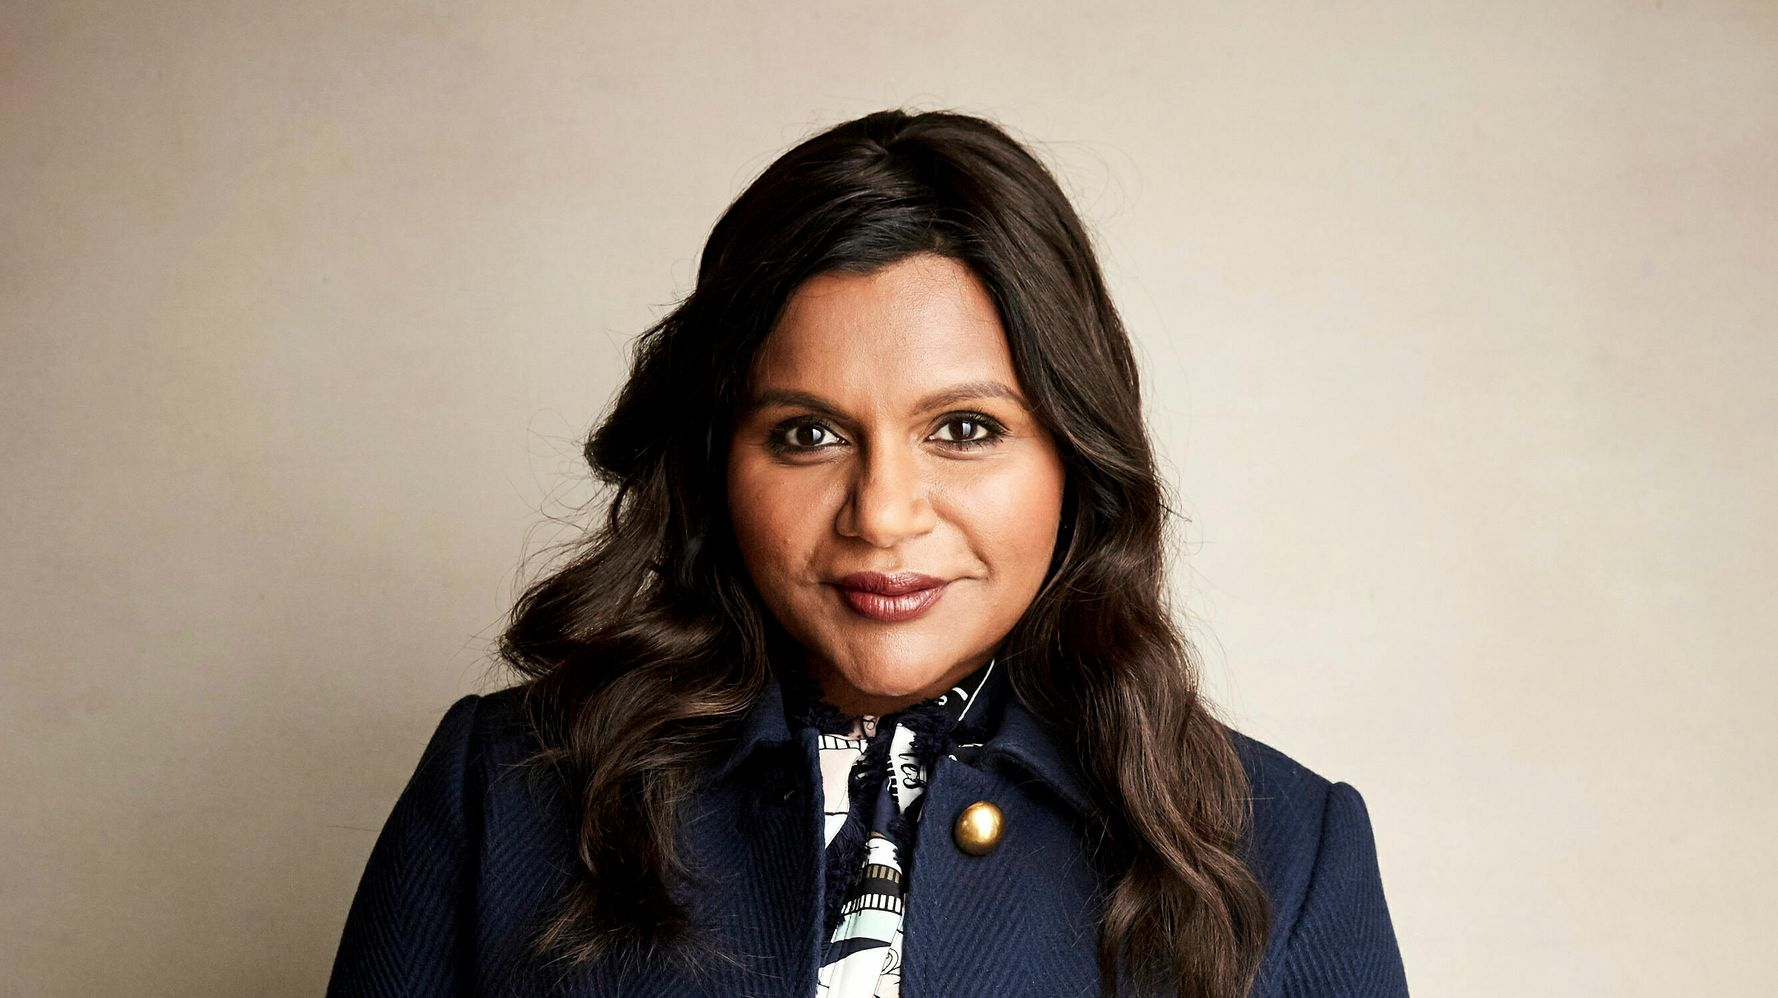 Mindy Kaling Posts Open Casting Call For Her New Netflix Comedy